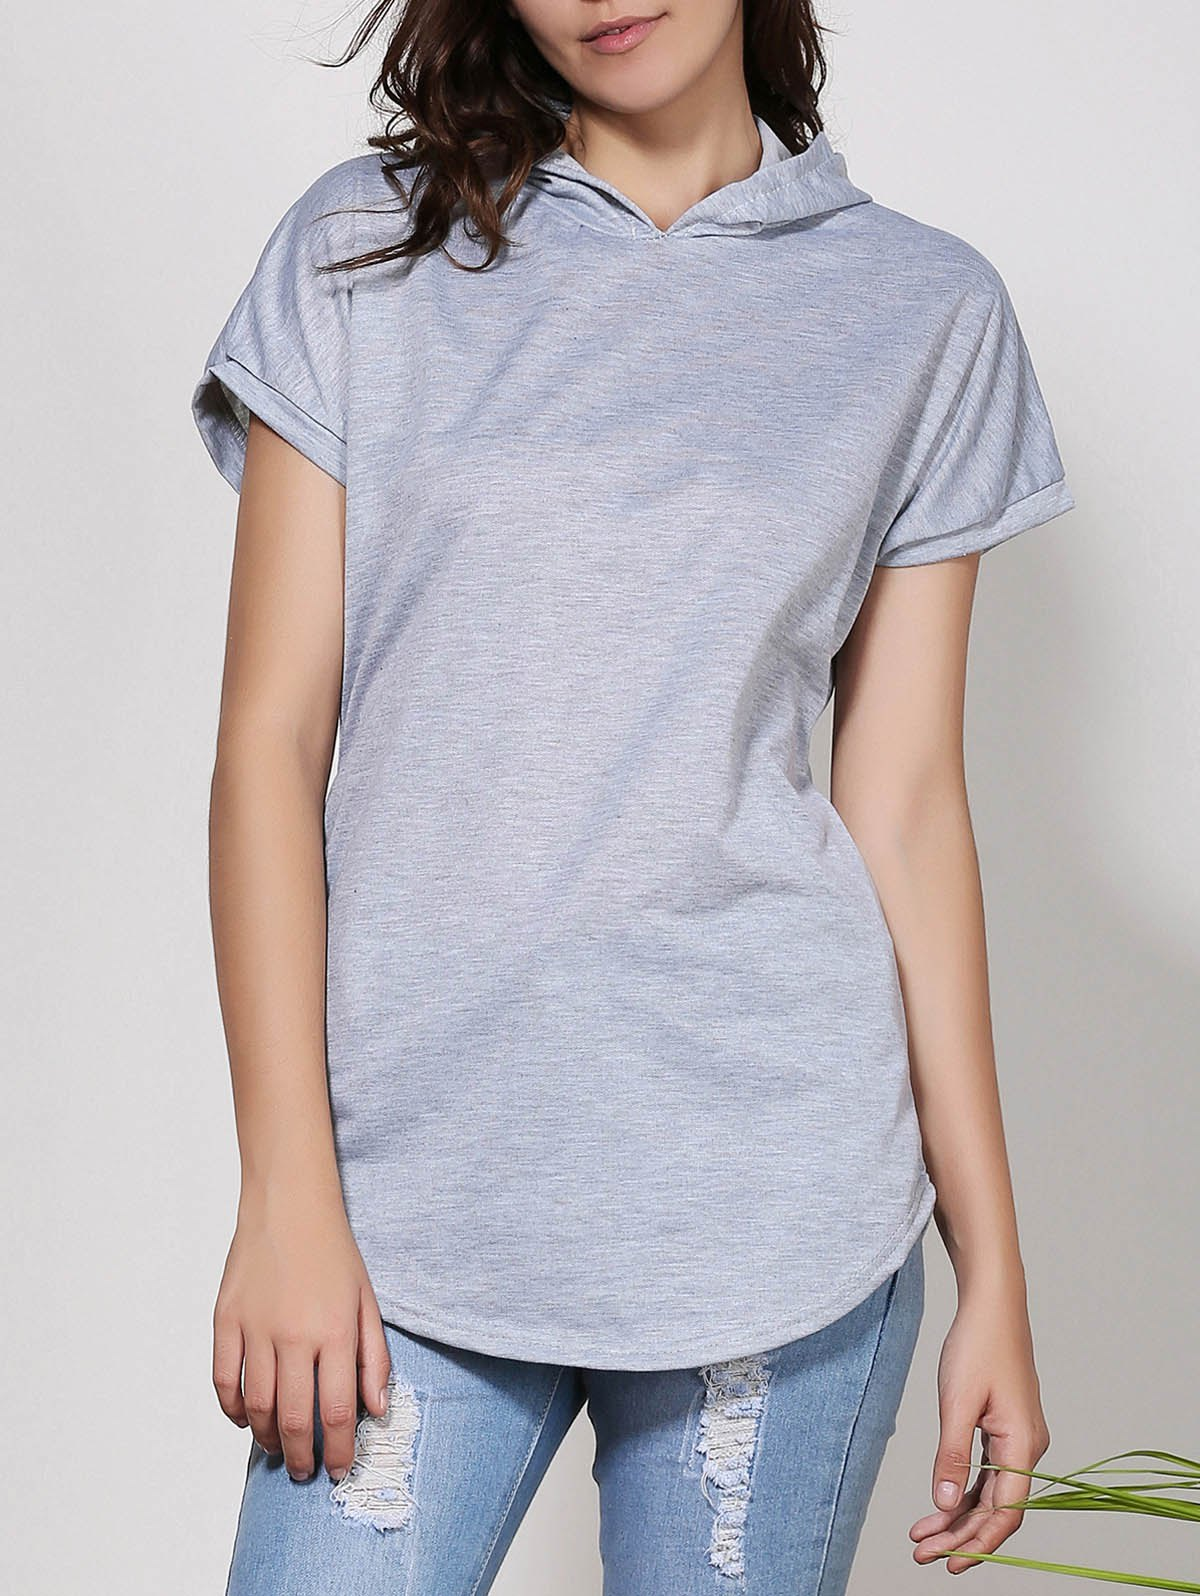 Stylish Hooded Short Sleeve Solid Color Asymmetrical Women's T-Shirt - GRAY M